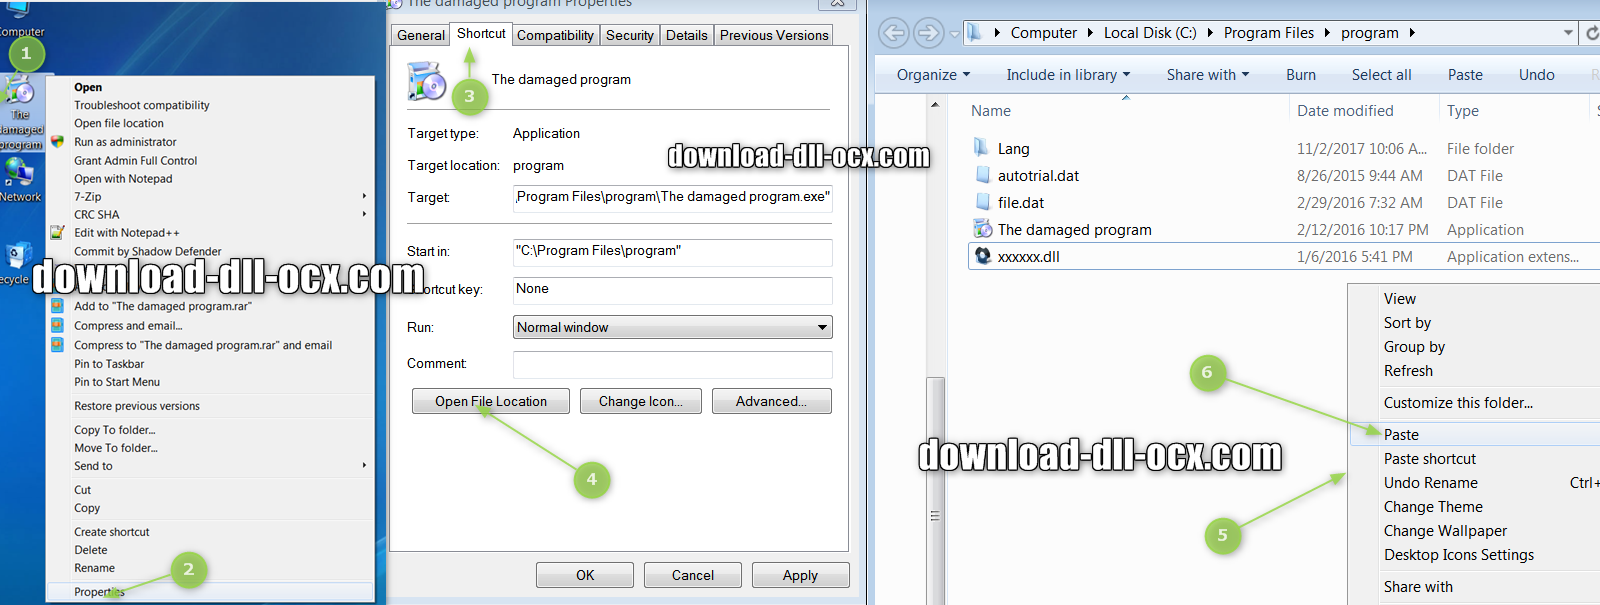 how to install Mnypass.dll file? for fix missing